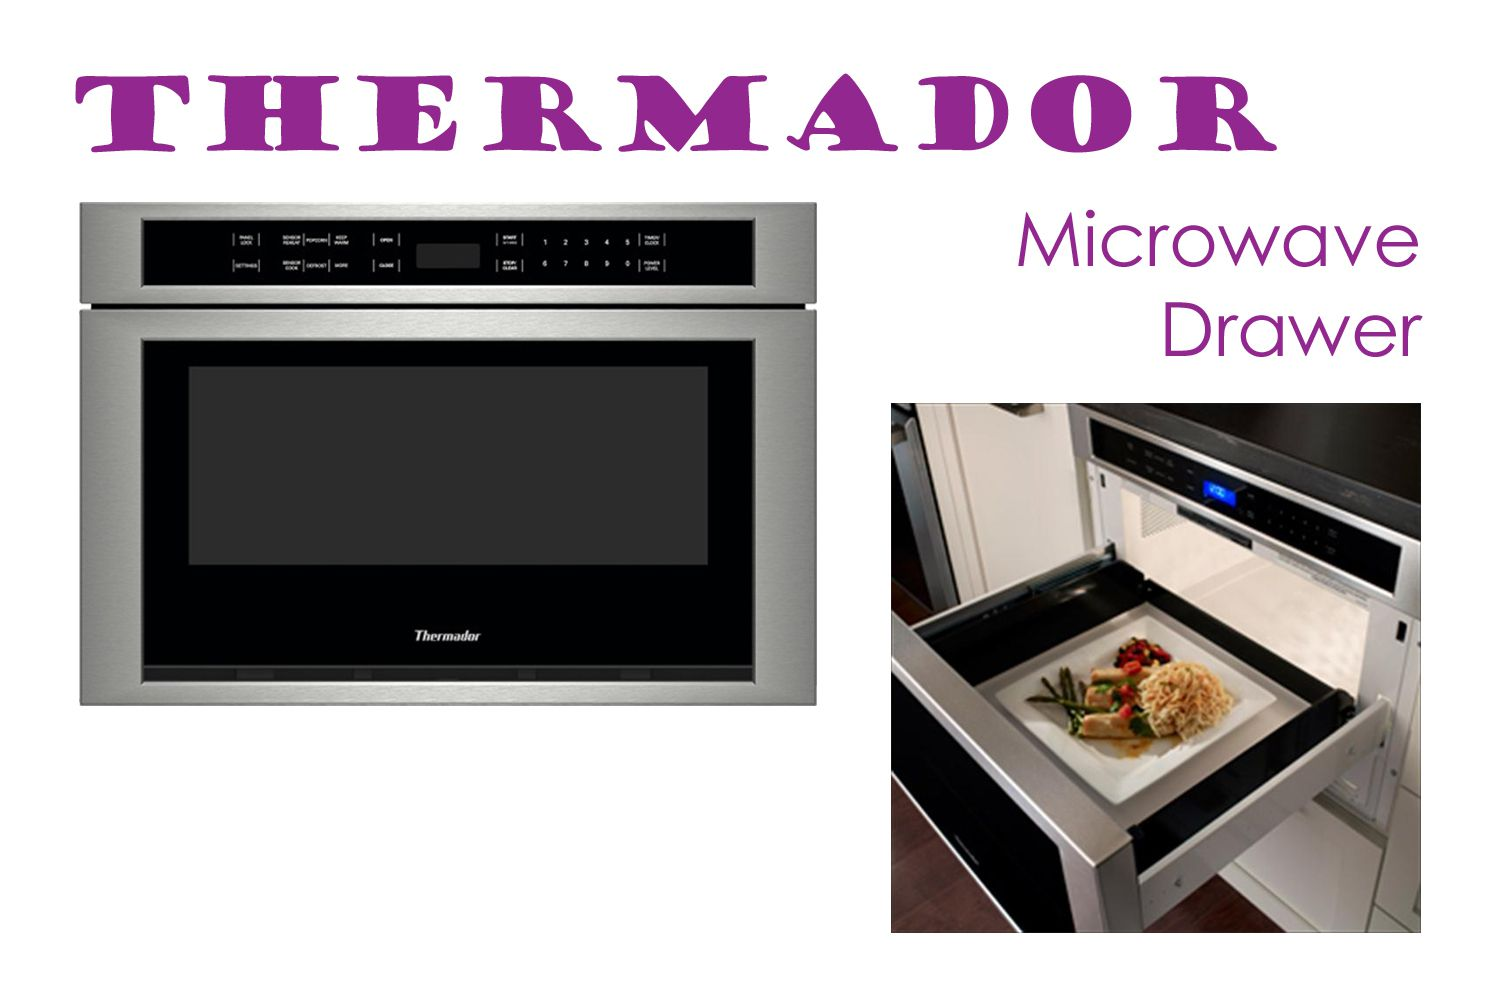 Thermador Microwave Drawer